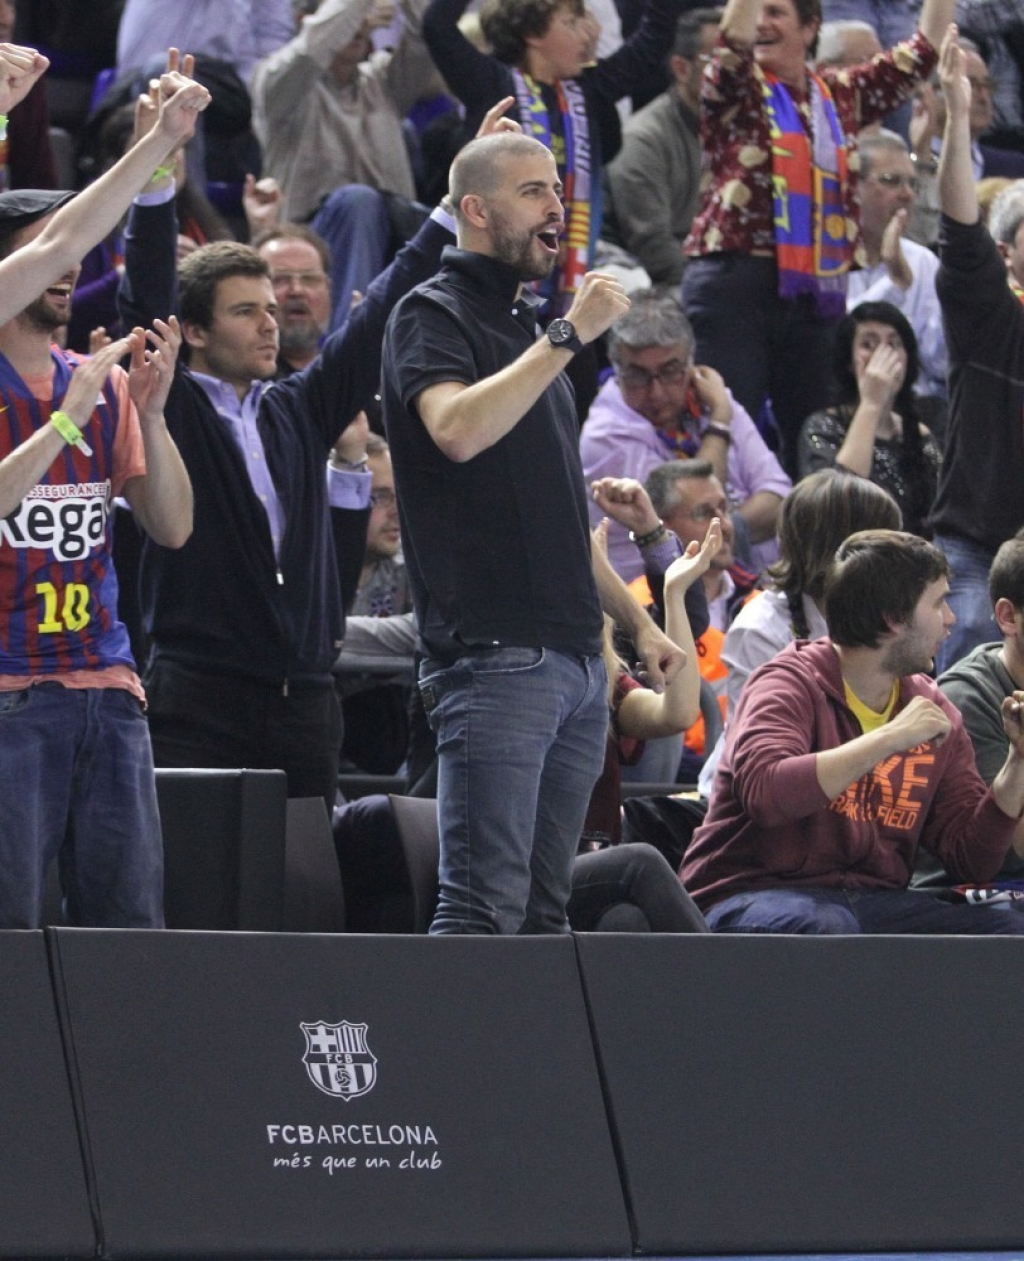 Shakira and Gerard Pique Watch a Game in Spain 44077